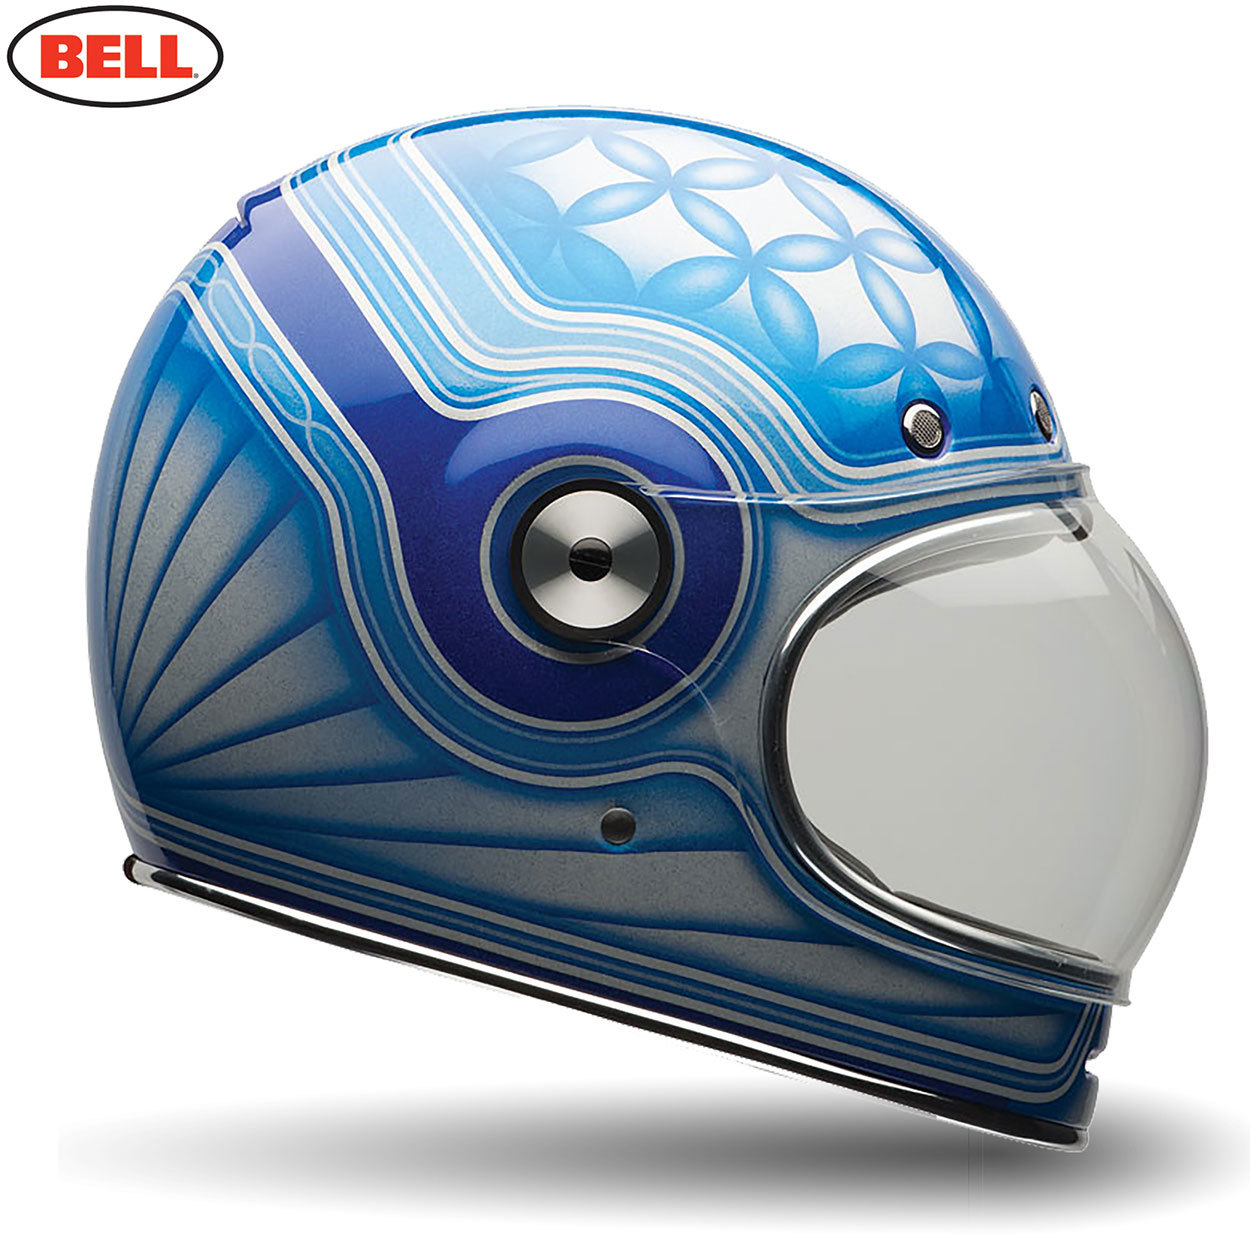 bell cruiser bullitt se adult helmet chemical candy blue. Black Bedroom Furniture Sets. Home Design Ideas